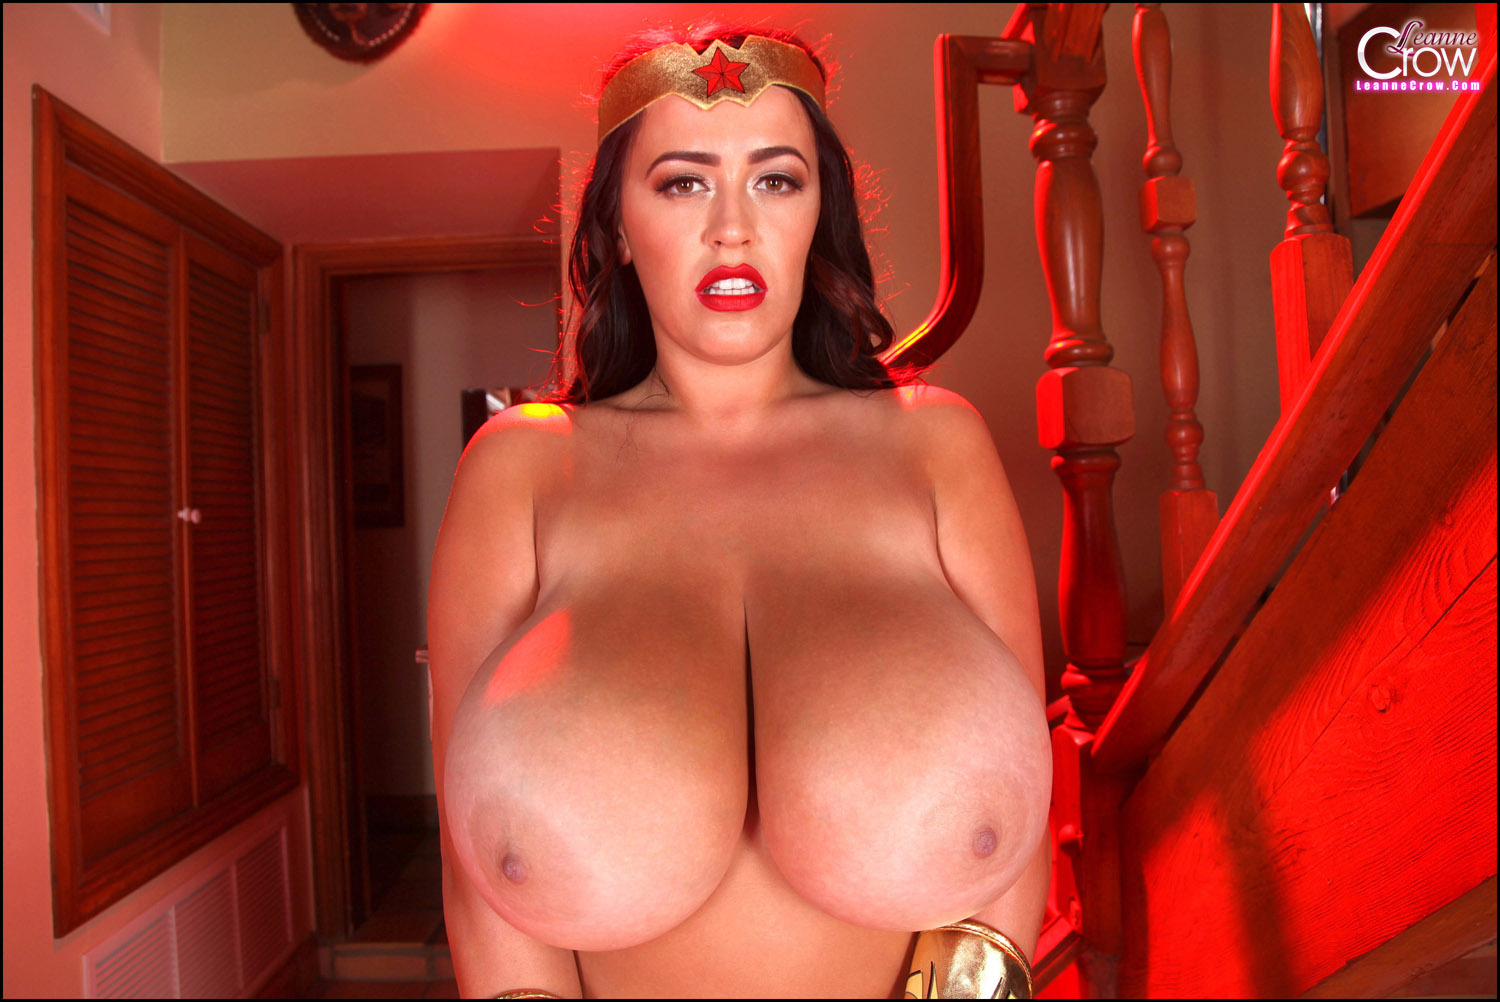 Wonder woman with massive naked boobs pictures erotic scene